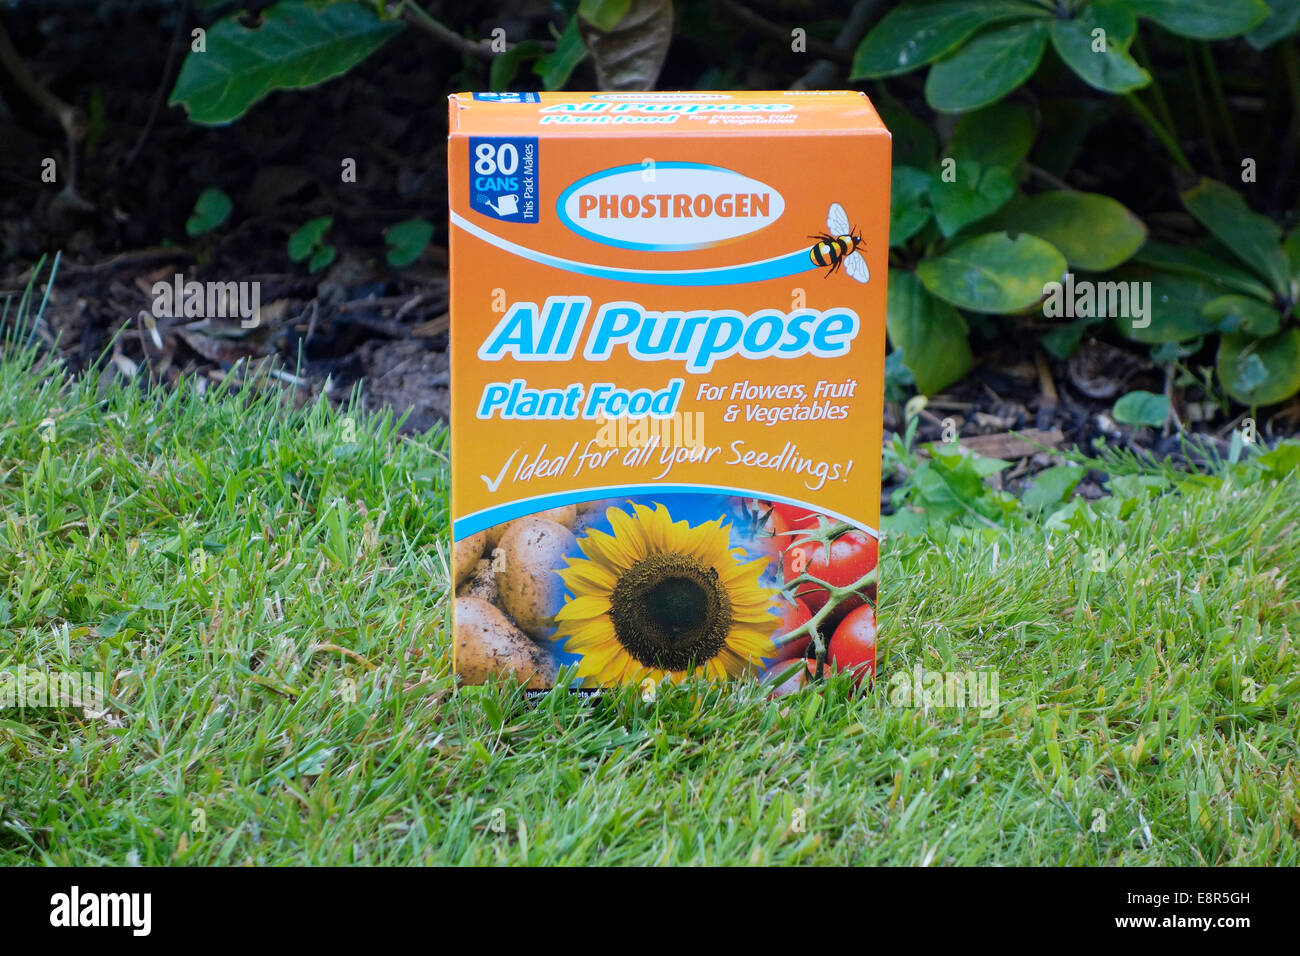 Phostrogen All Purpose Soluble Plant Food - Stock Image